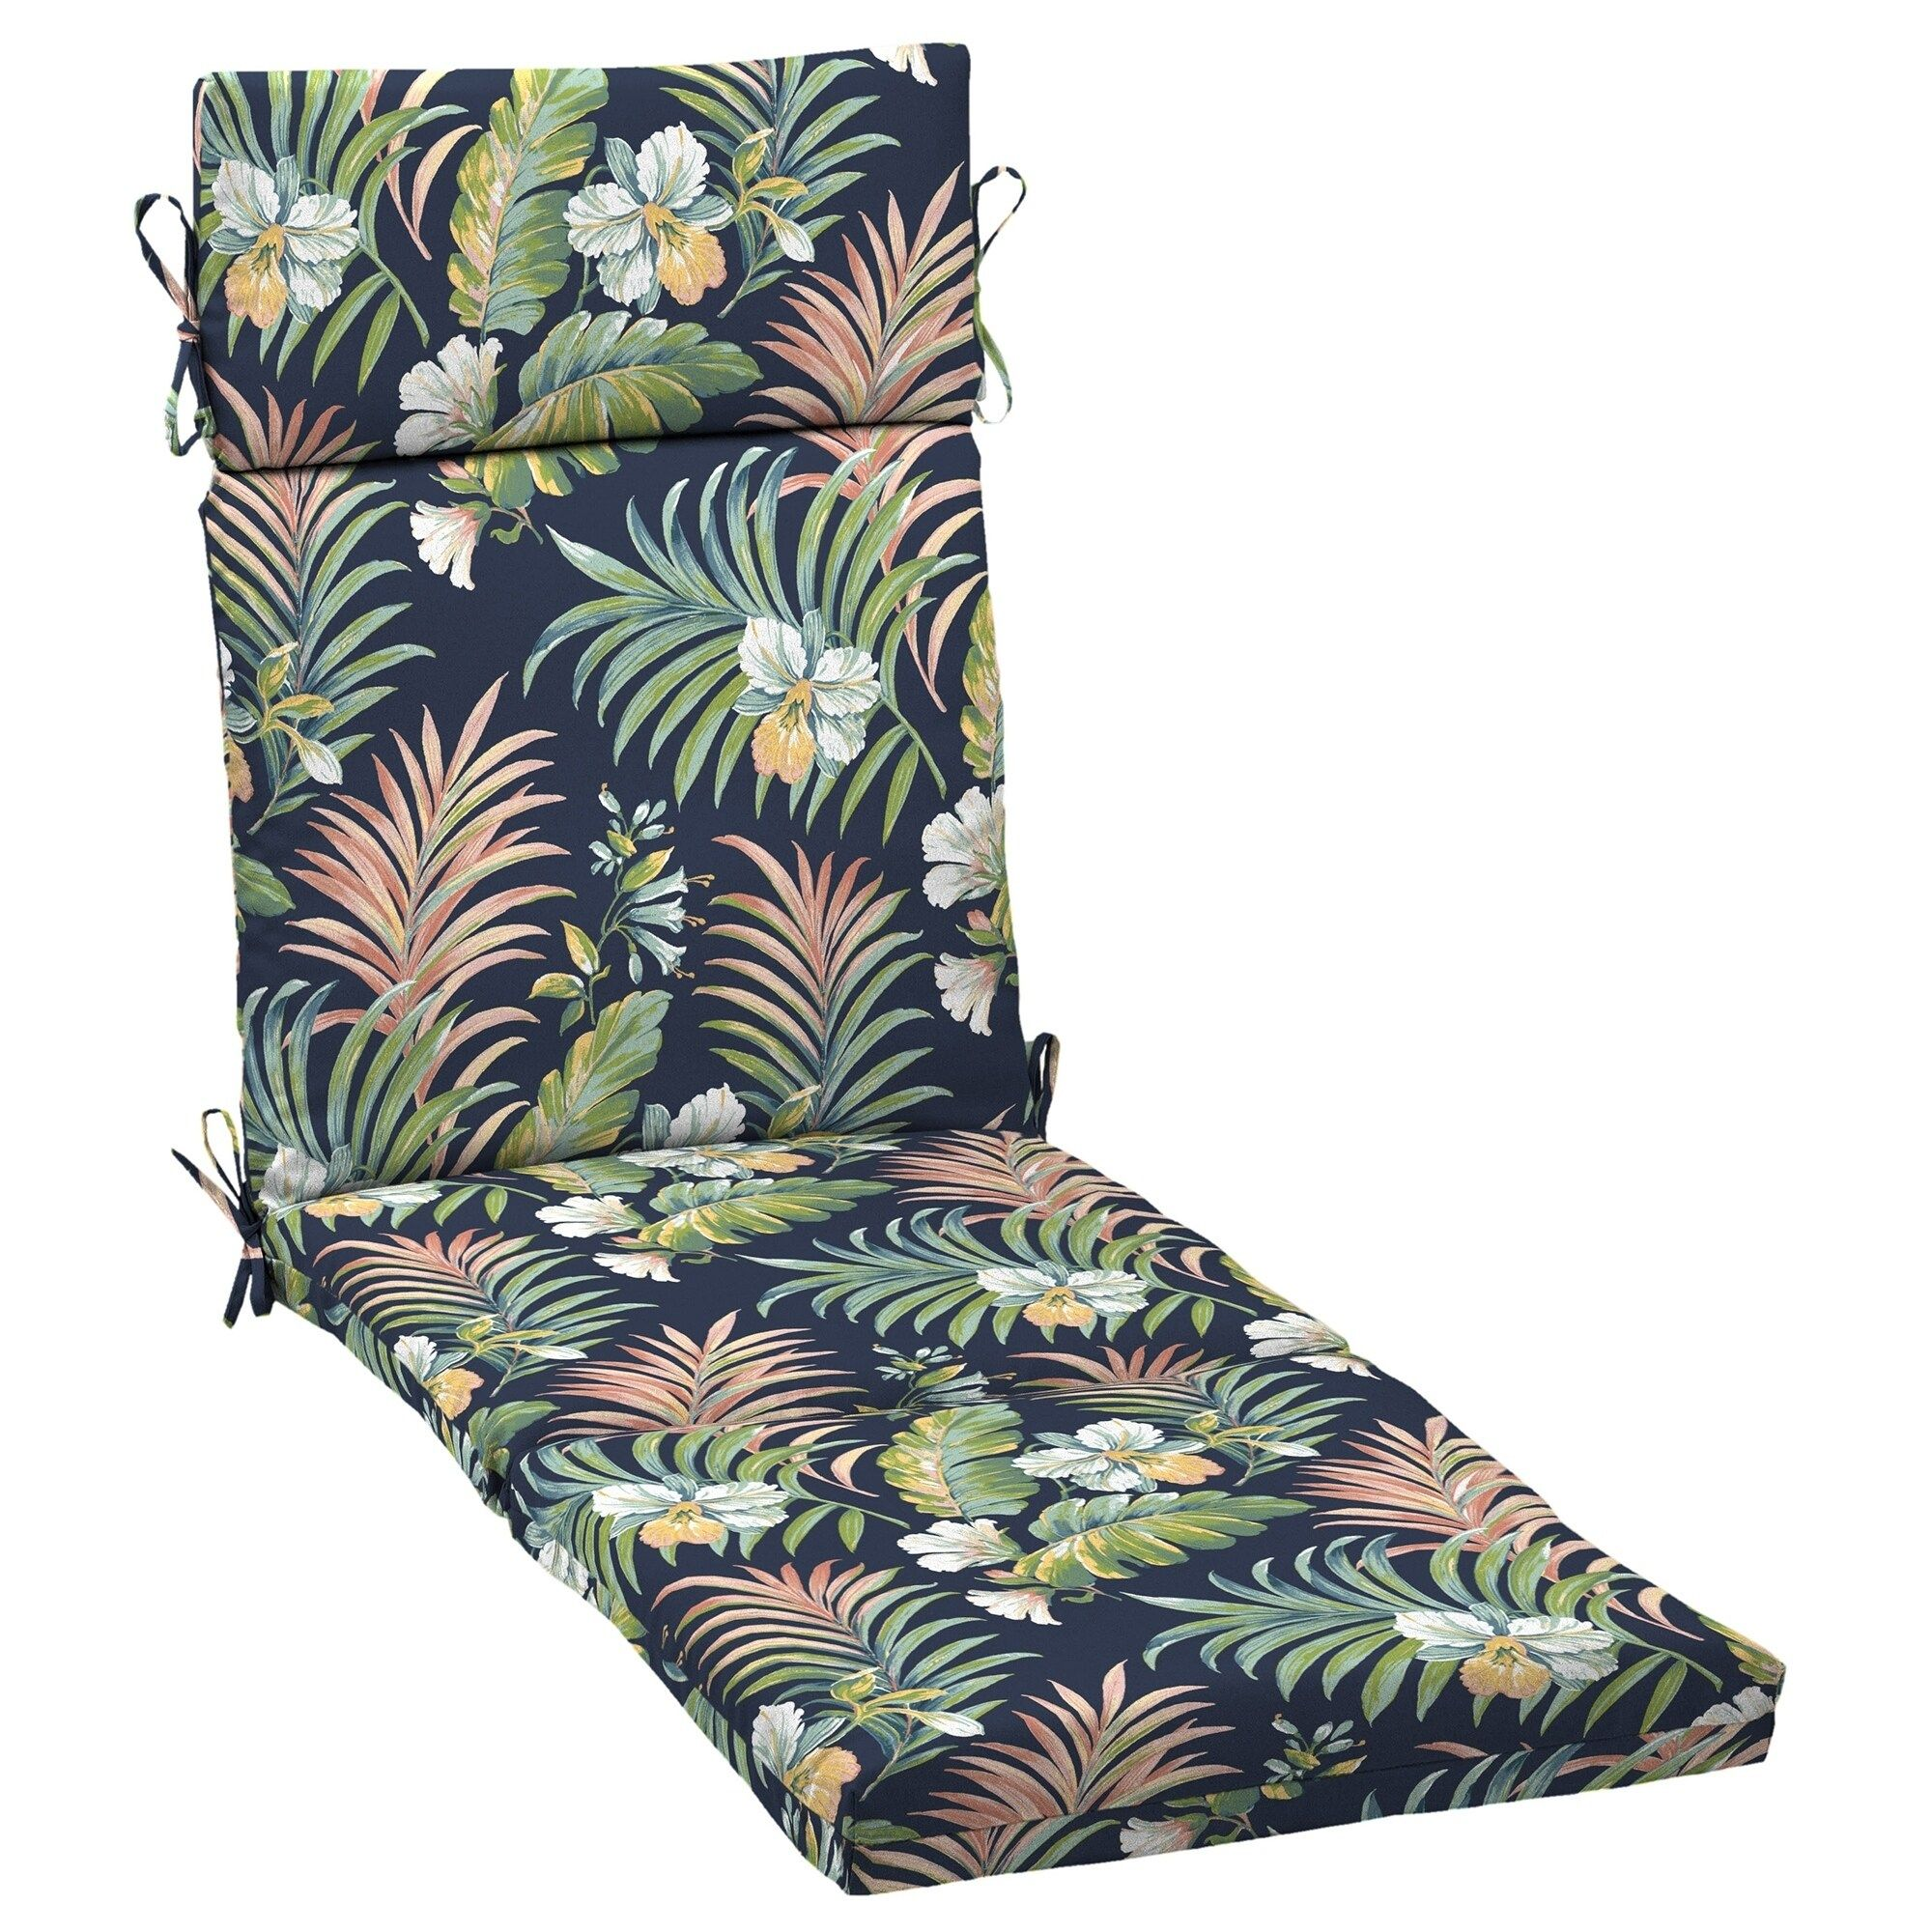 Arden Selections Simone Tropical Outdoor Chaise Lounge